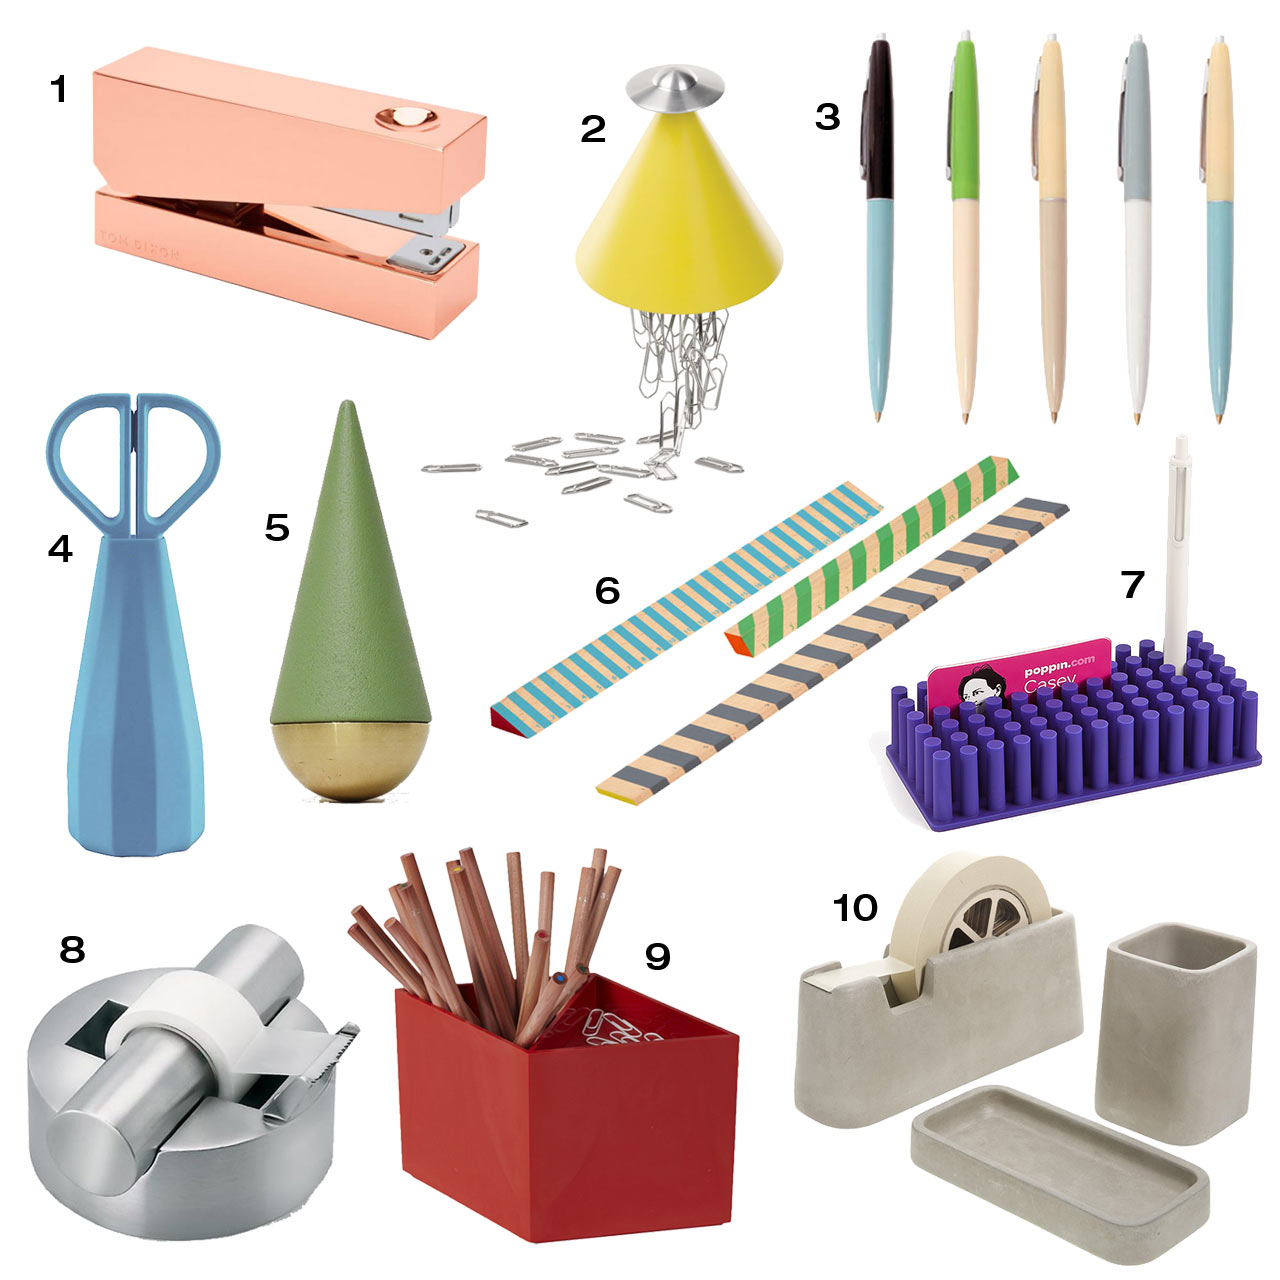 Delicieux 10 Modern Office Supplies To Up Your Desk Game